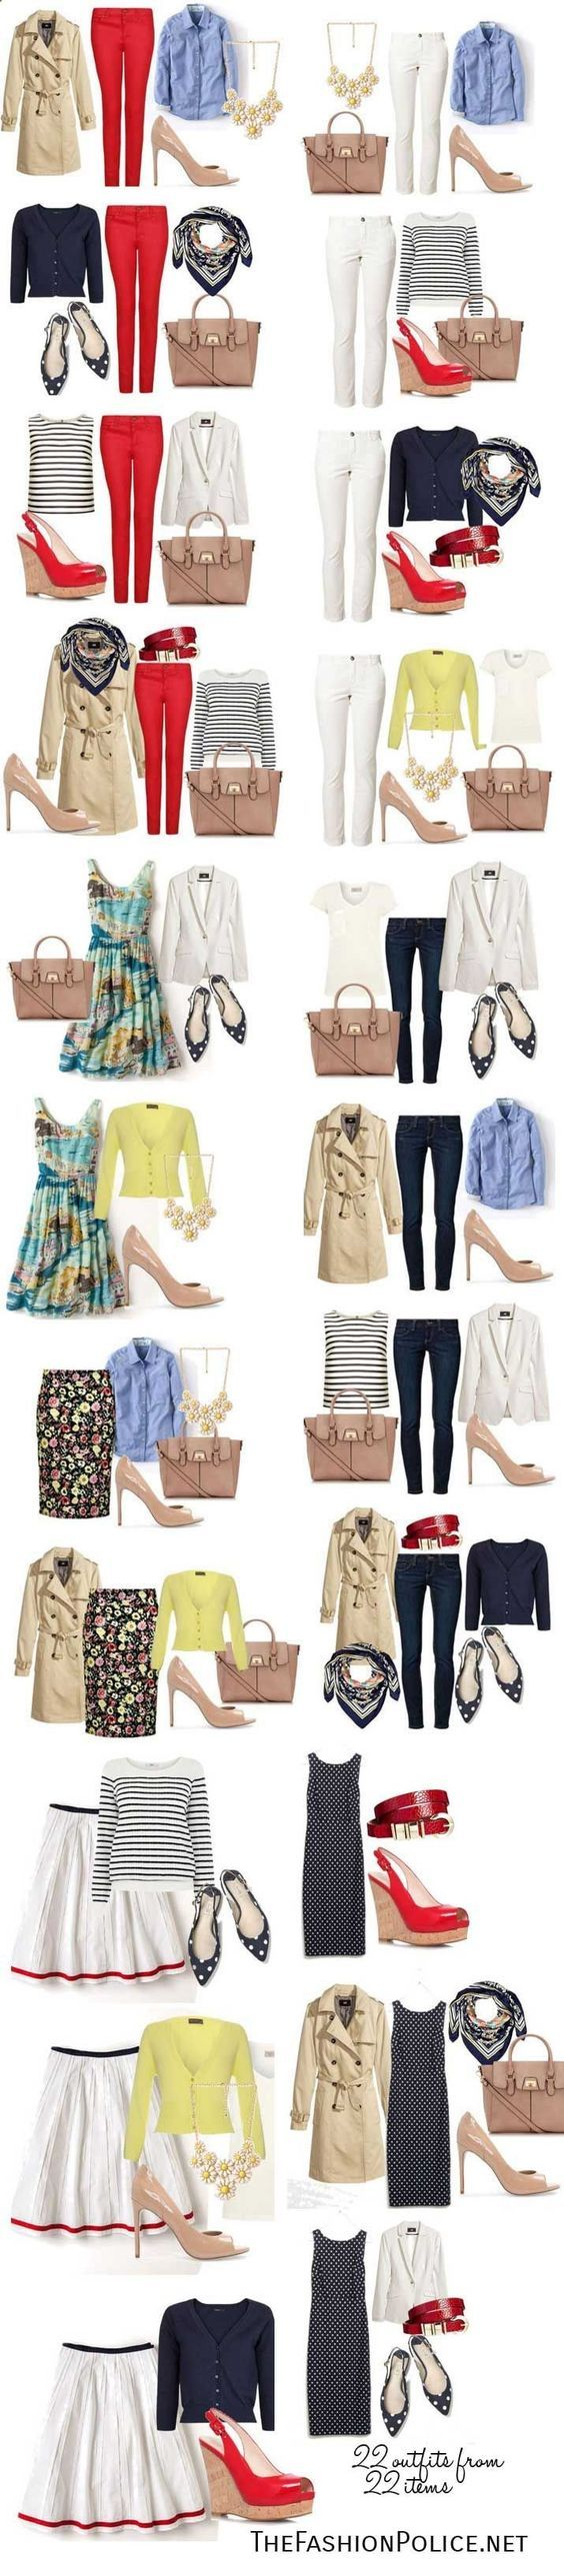 Spring Capsule Wardrobe 2014 | 22 outfits from 22 items. I love these types of things. They really help me see the possibilities in my closet.: